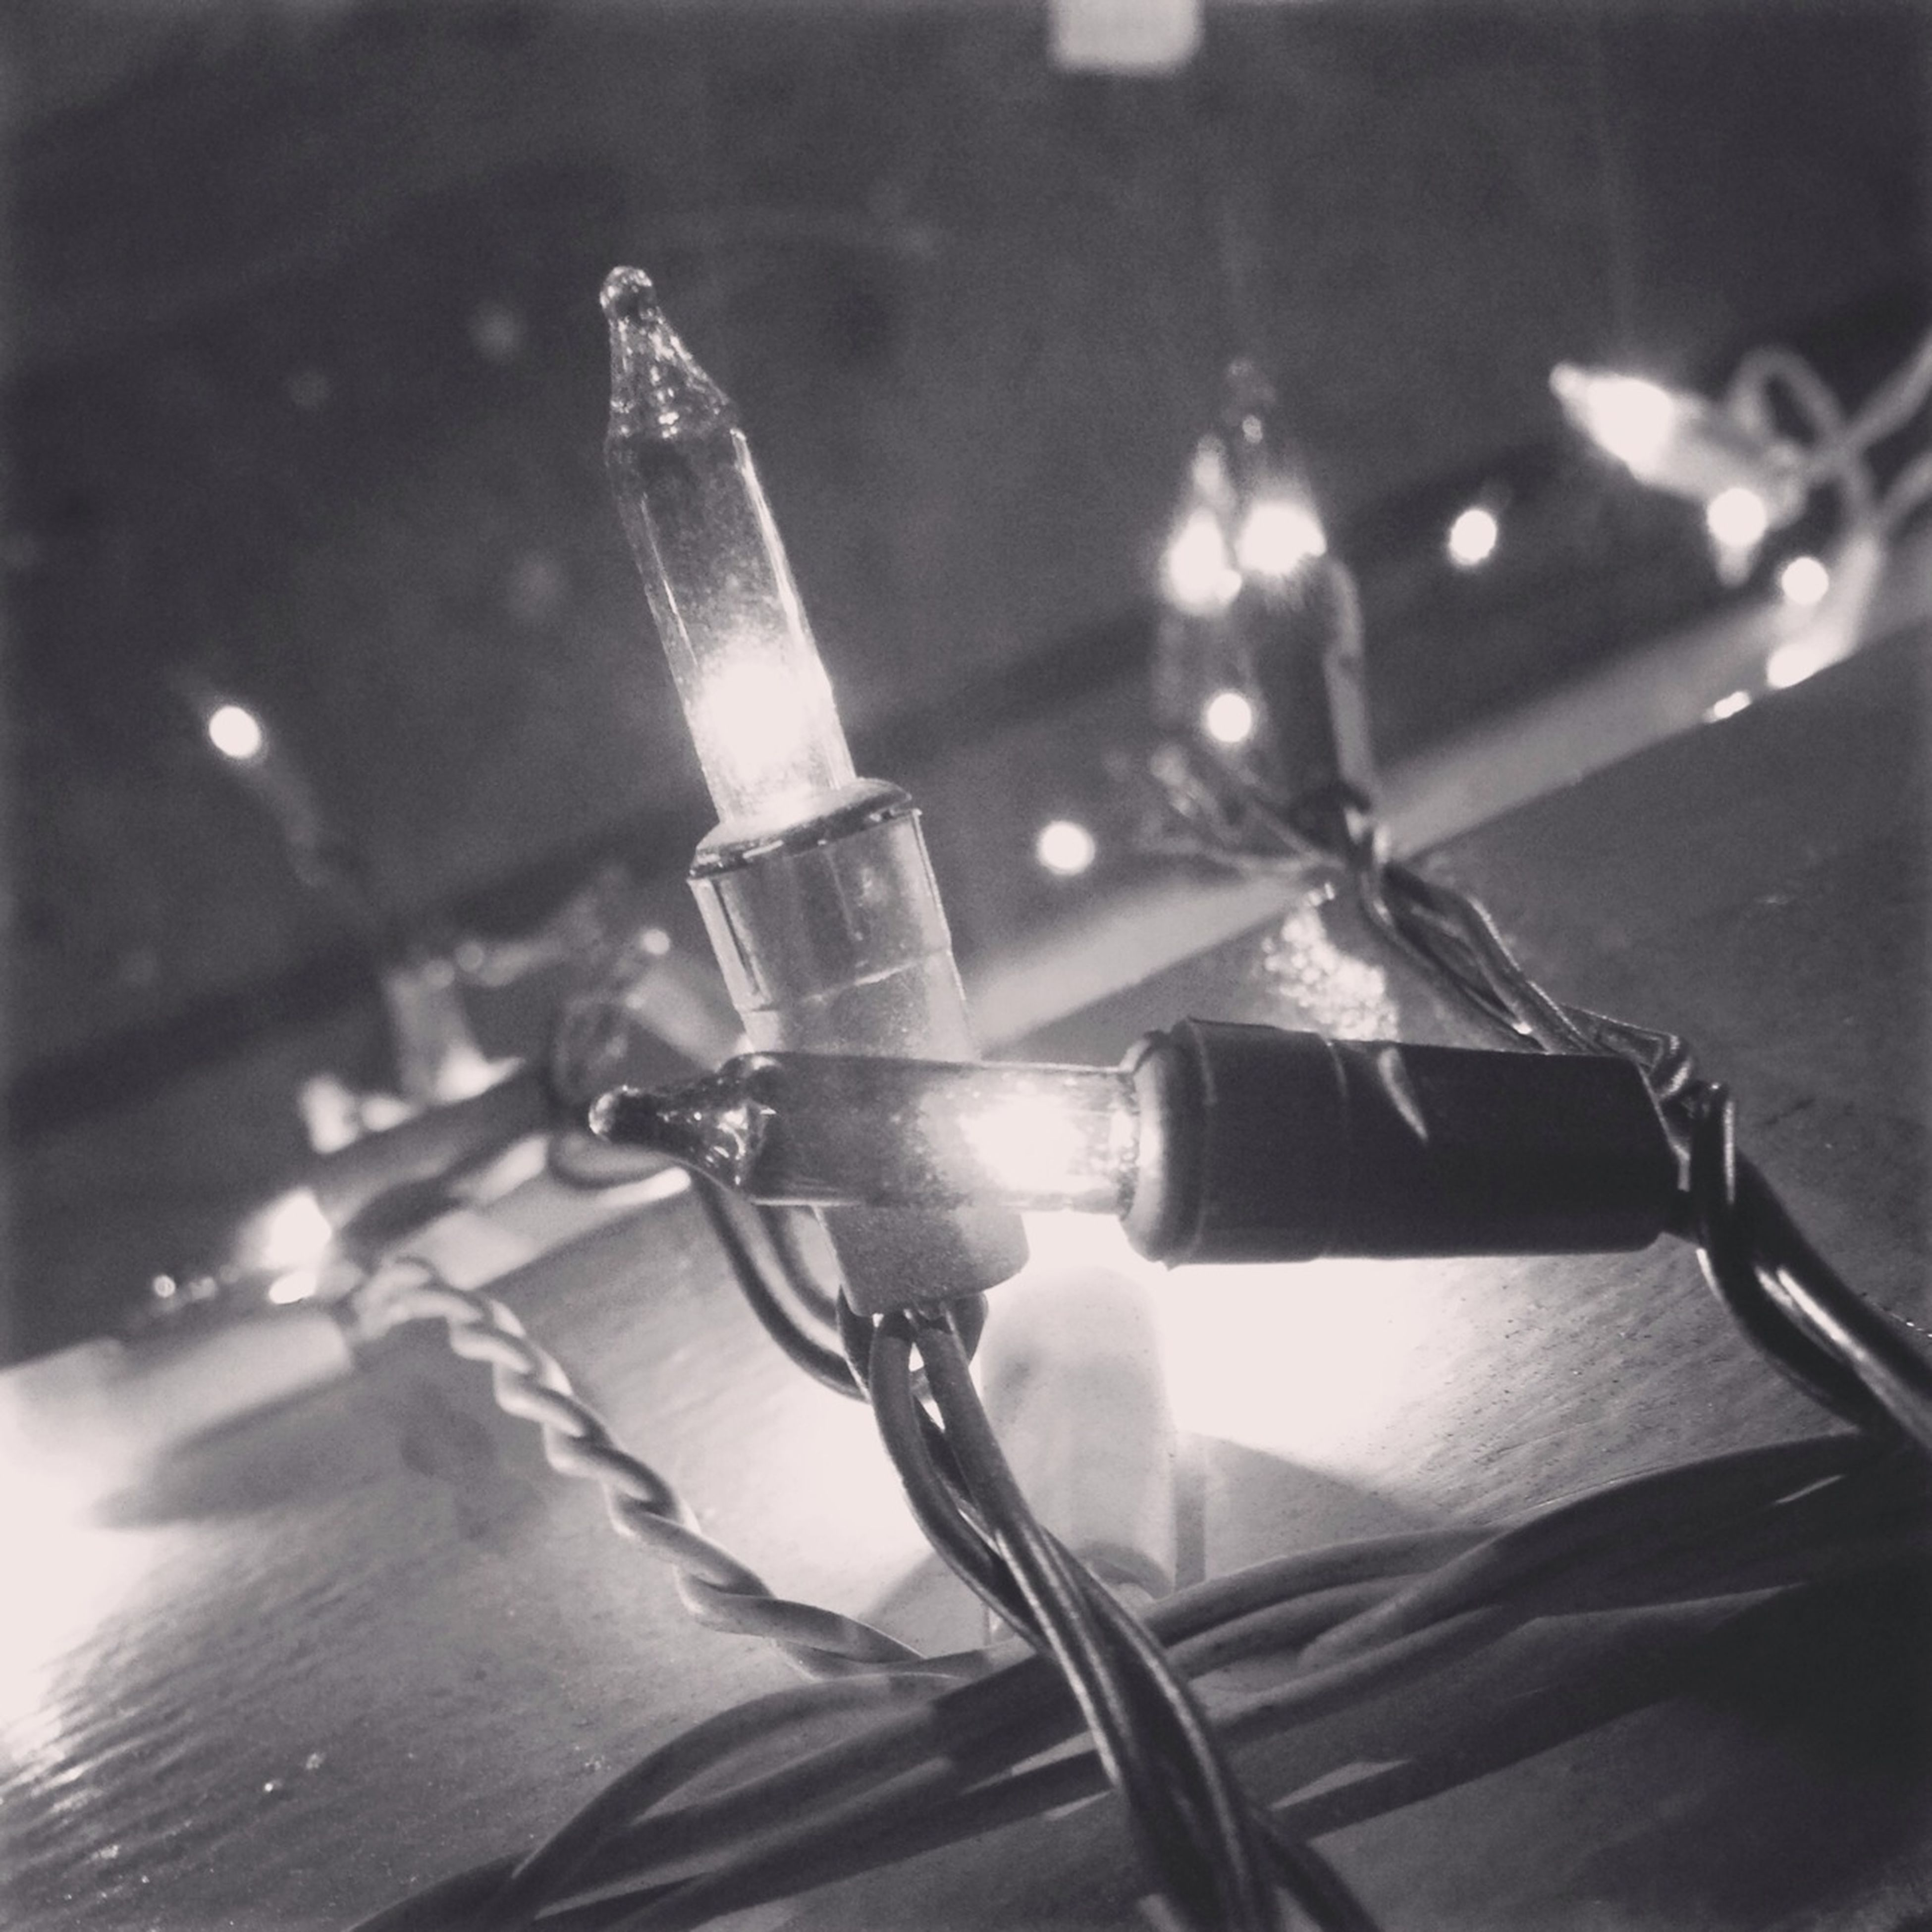 indoors, table, still life, close-up, illuminated, focus on foreground, high angle view, selective focus, home interior, lighting equipment, wineglass, no people, music, candle, food and drink, shadow, burning, decoration, musical instrument, single object